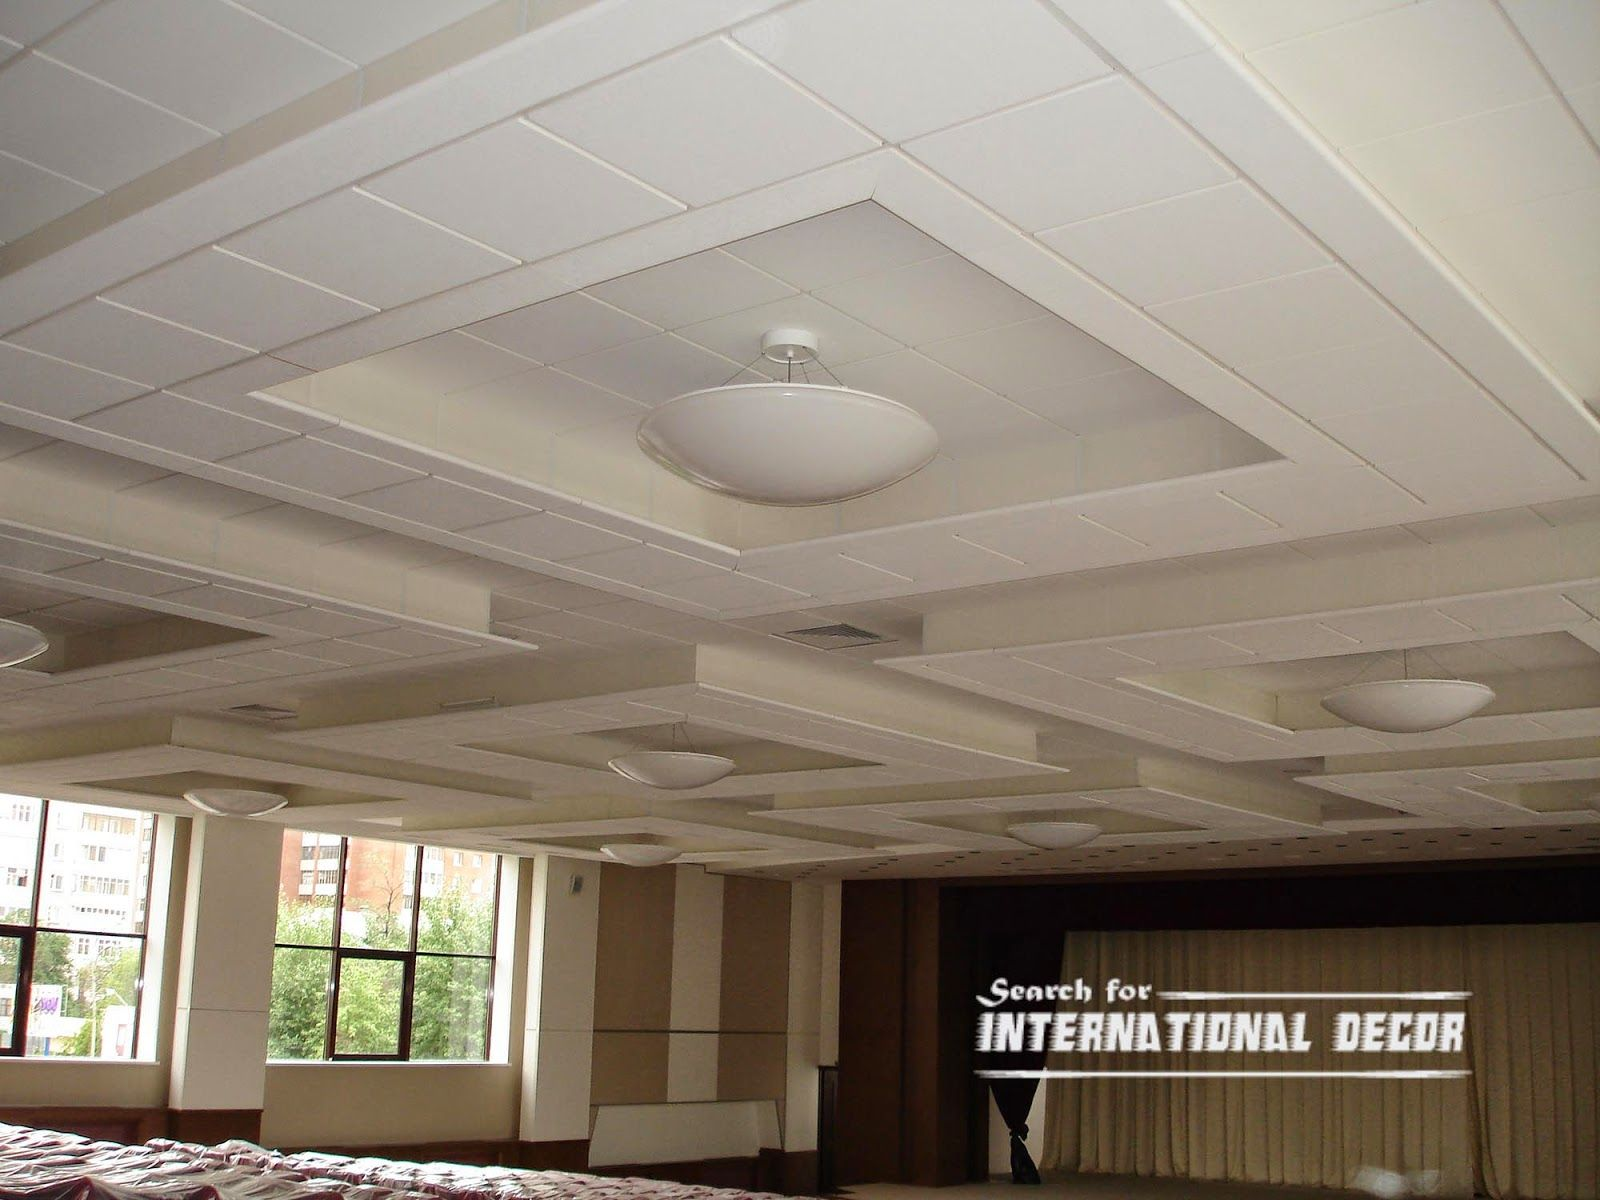 depot of ceiling old sheets cost acoustic armstrong size canada full commercial home suspended installation panels faux flooring asbestos textured wholesale usg acoustical cheap lowes tin tile glacier tiles basic black drop x durable